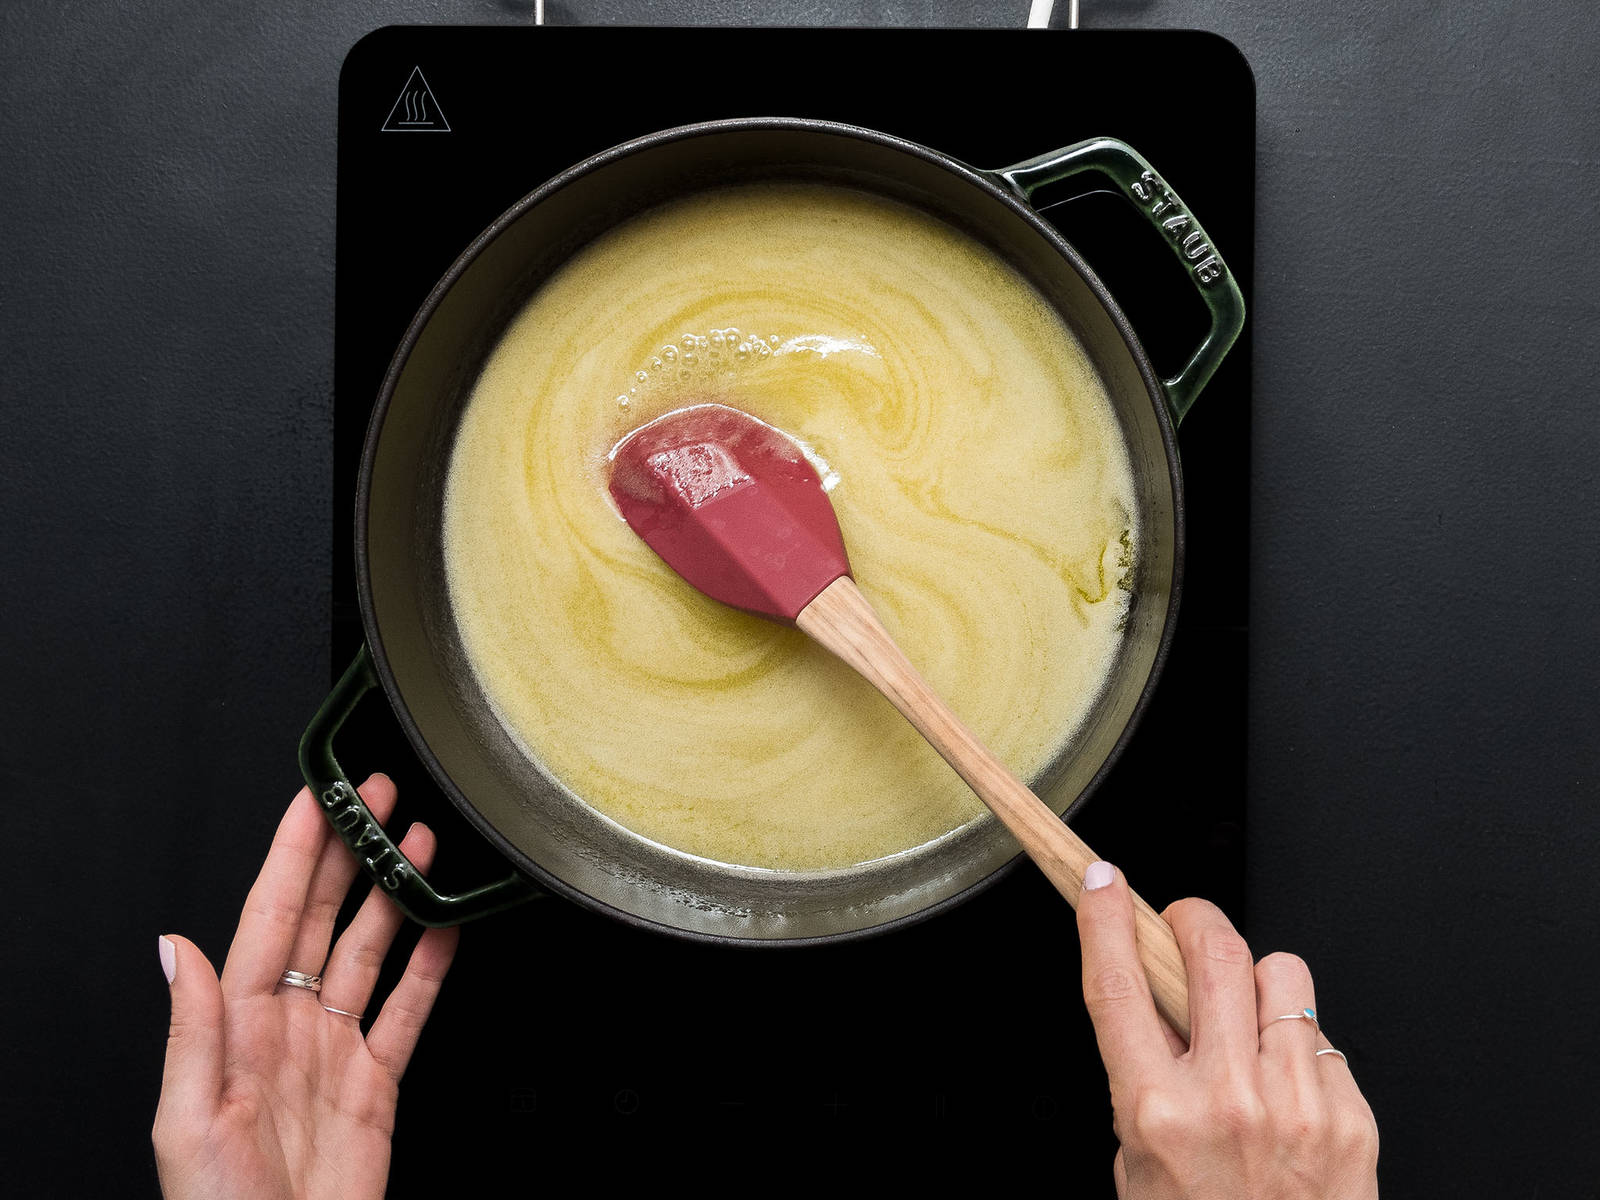 Preheat oven to 180°C/350°F. Add sugar, honey, butter, and heavy cream to a pot and heat at low temperature for approx. 5 min., or until sugar dissolves, stirring occasionally.  Let simmer for approx. another 5 min. on medium heat.